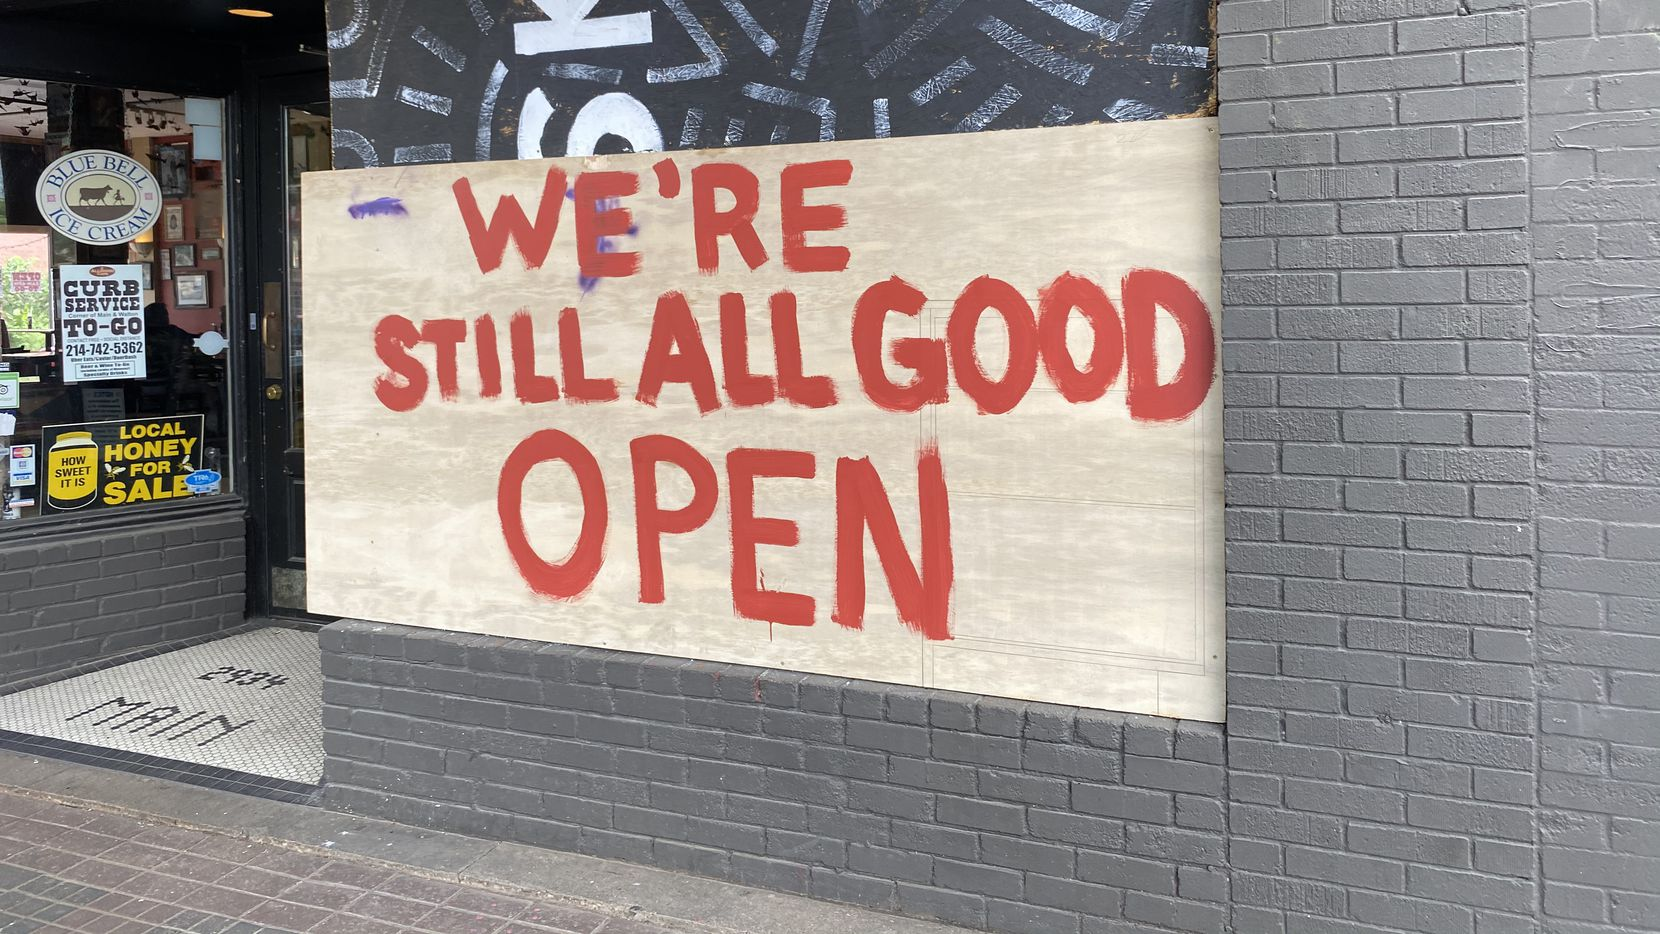 AllGood Cafe in Deep Ellum sustained damage Saturday night, but on Sunday, the restaurant projected positivity and carried on with business.